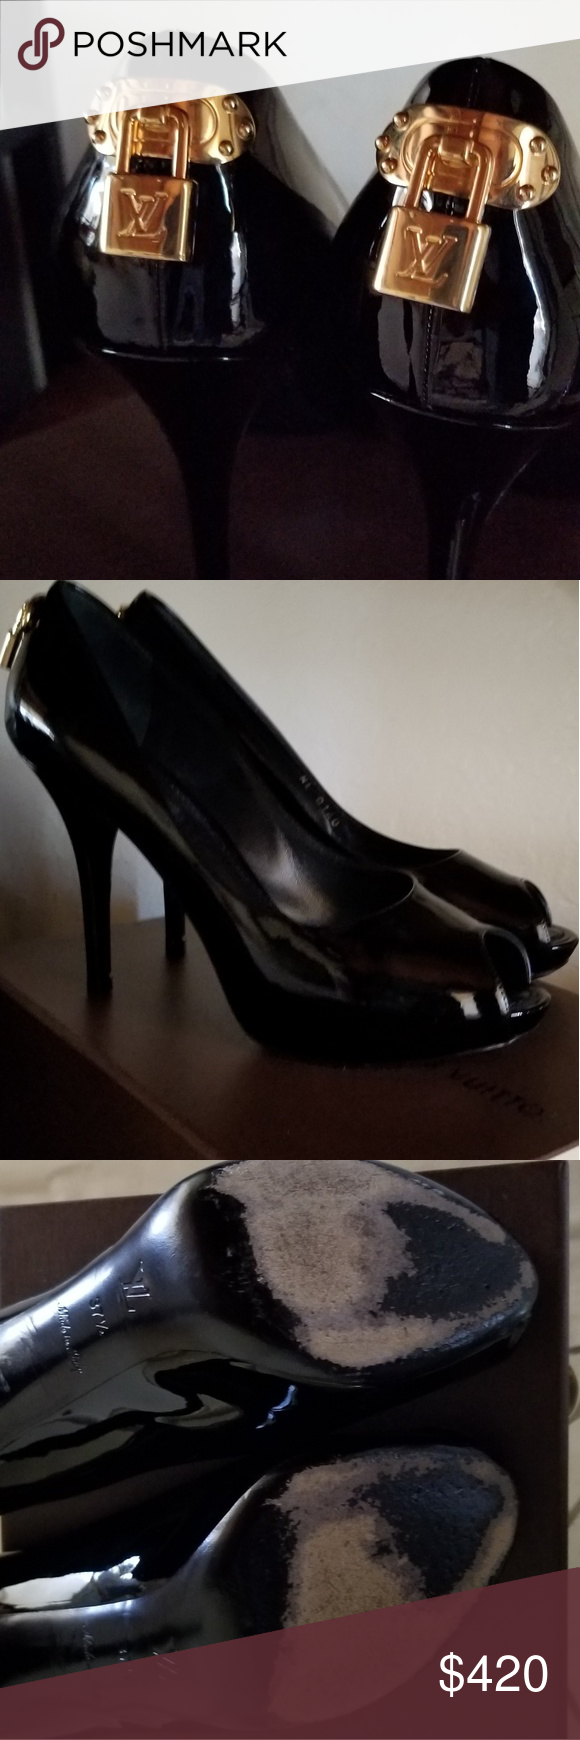 8e97739b344c Louis Vuitton Black Covered Platform Heels Stunning Black Gold Patent  Leather Oh Really Peep-toe